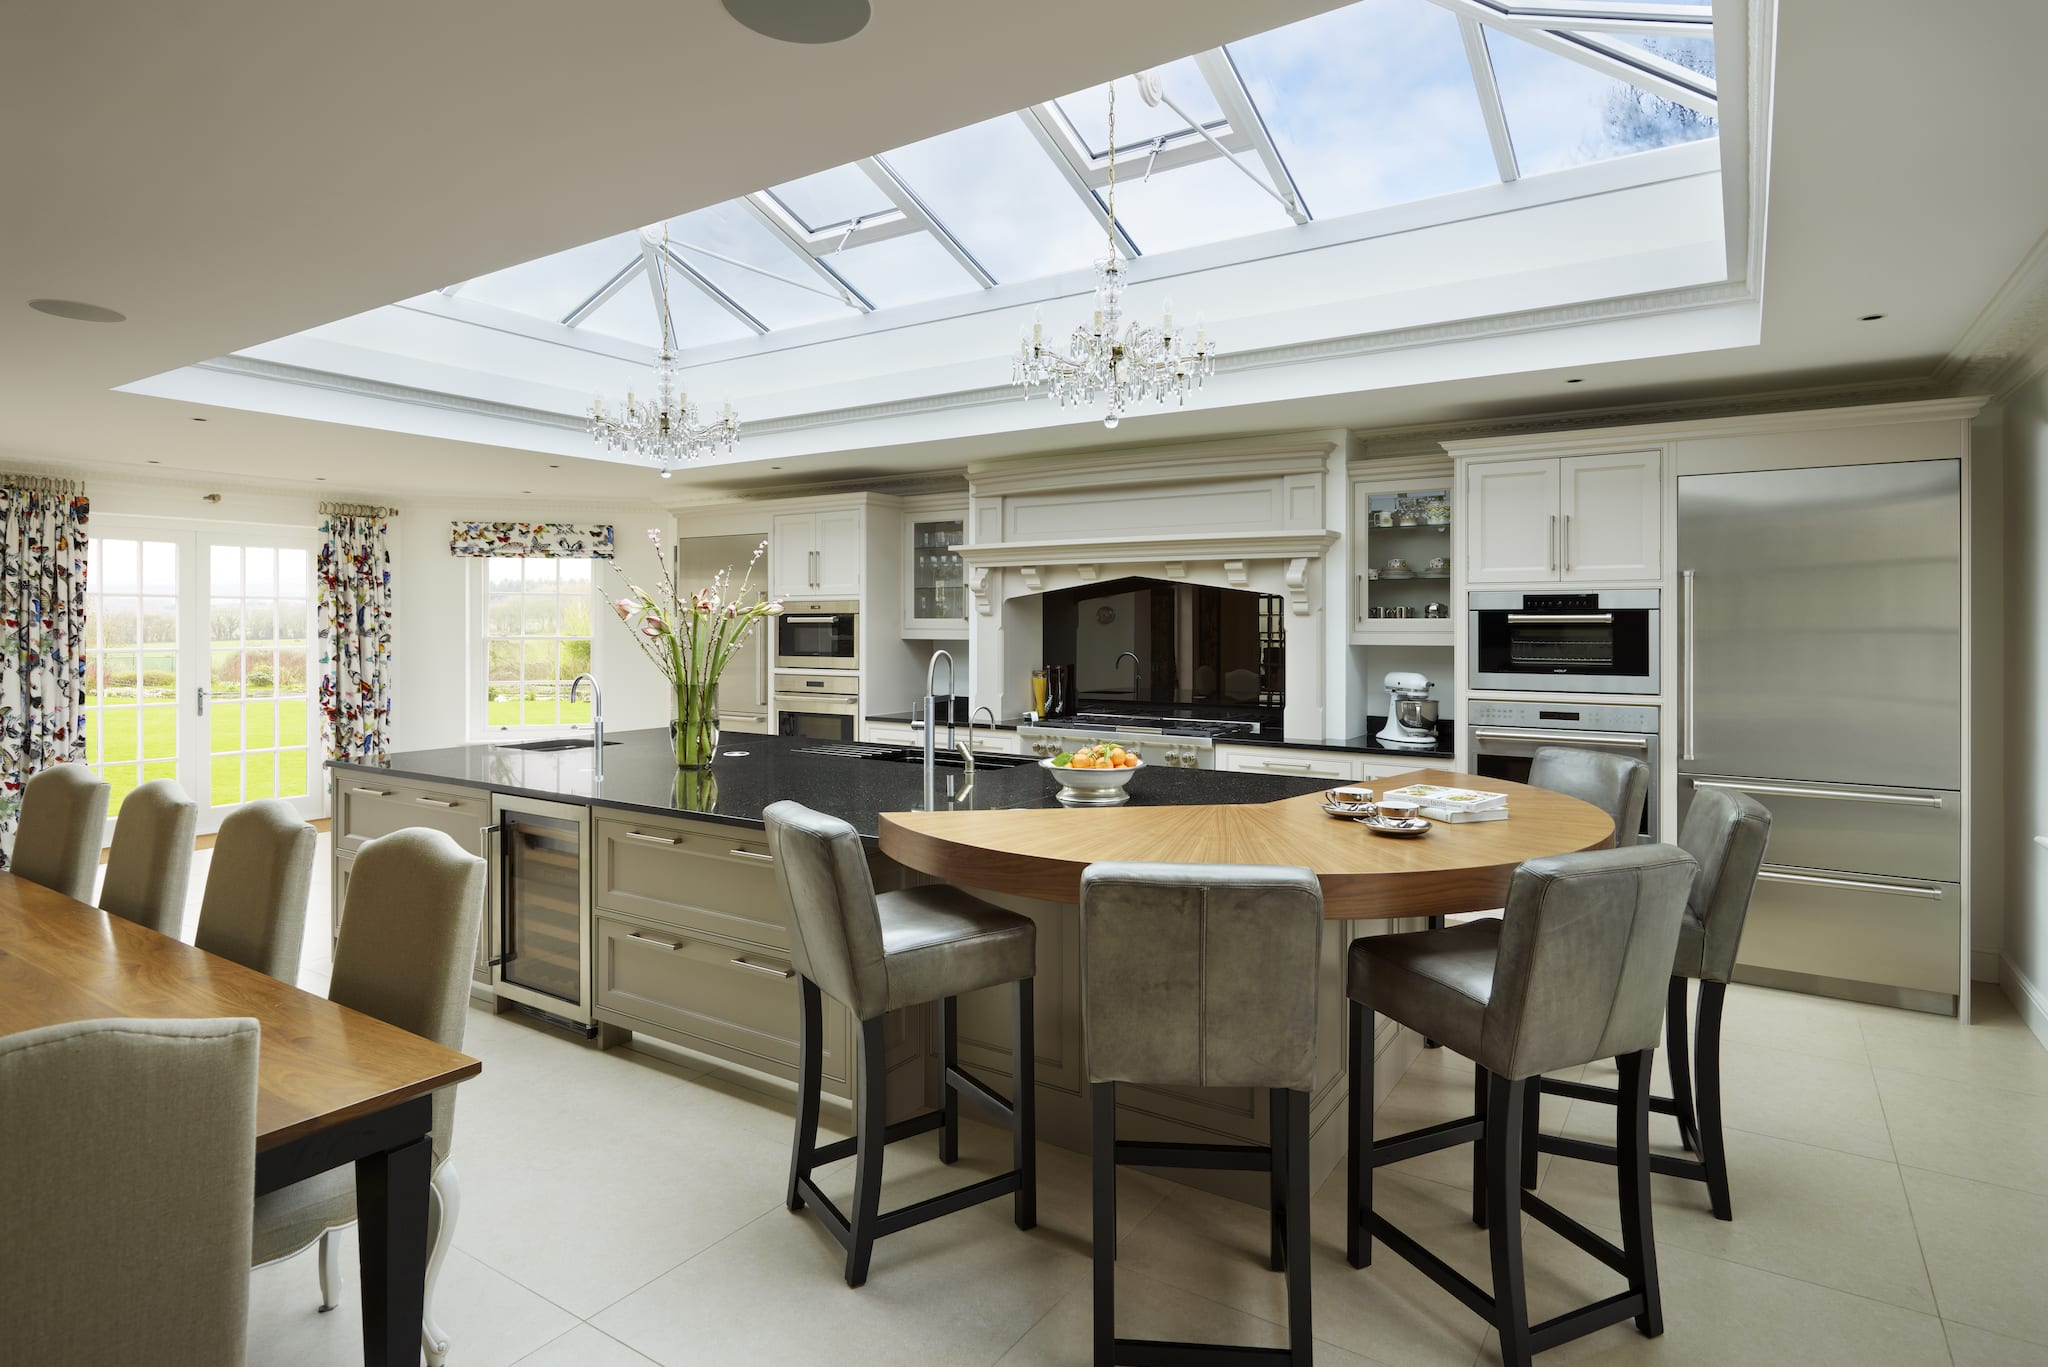 Kitchen Dining And More.Fitting A Dining Space In The Kitchen What Are Your Options